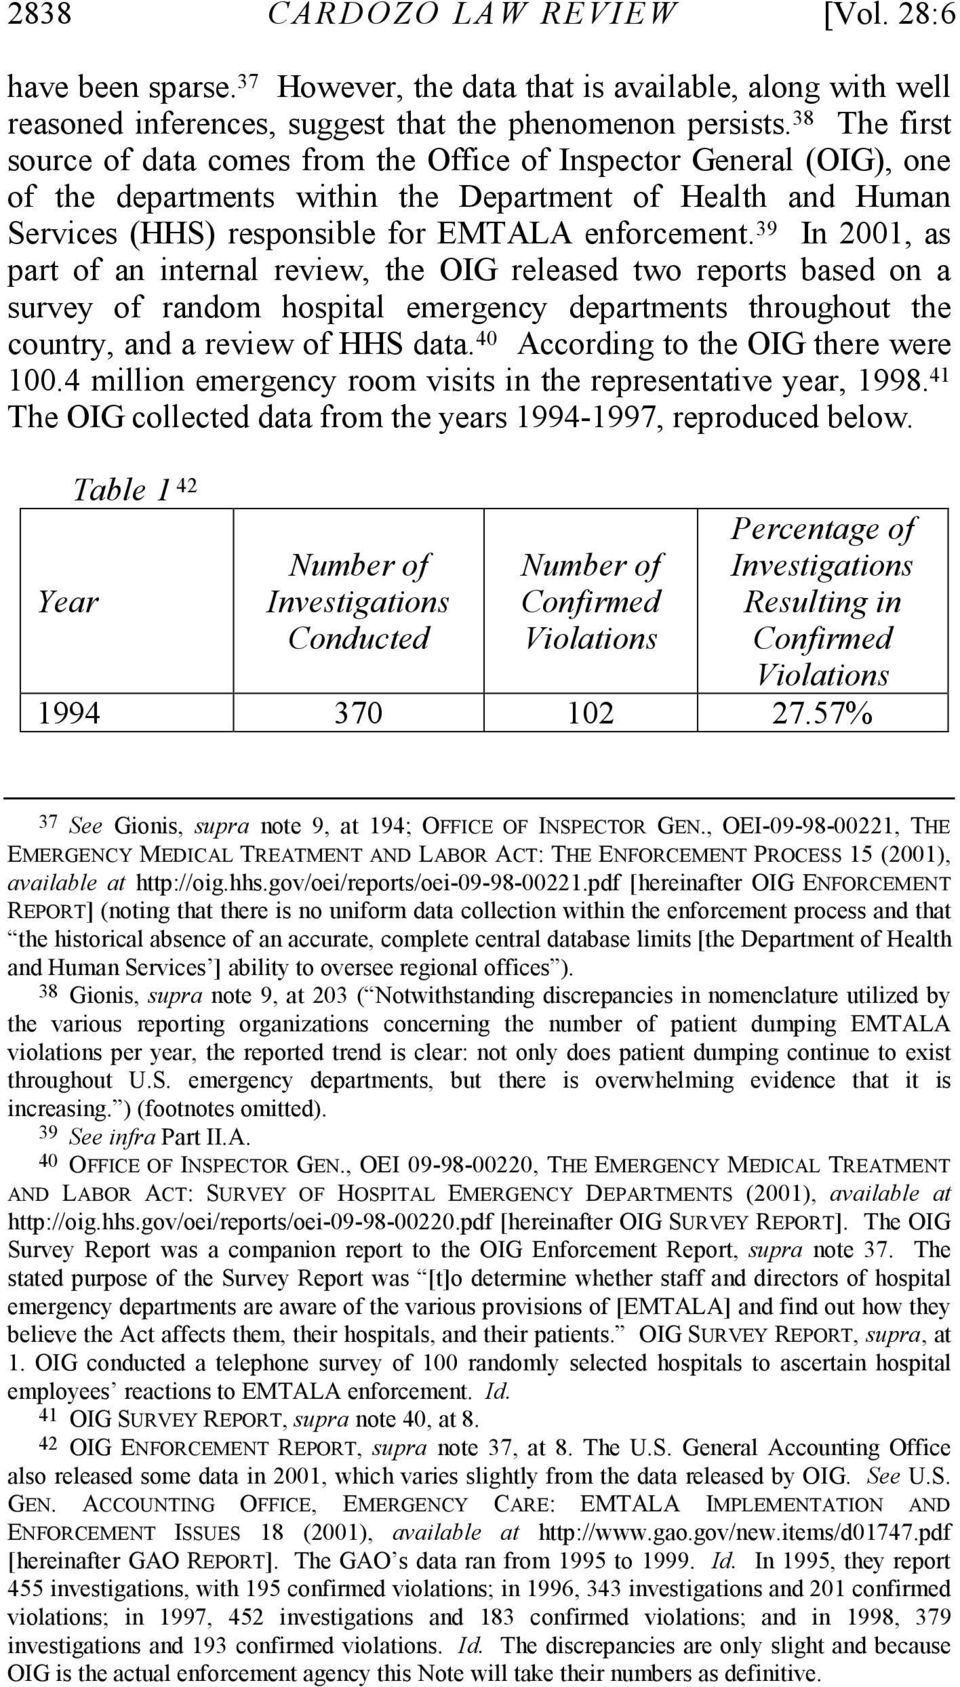 39 In 2001, as part of an internal review, the OIG released two reports based on a survey of random hospital emergency departments throughout the country, and a review of HHS data.